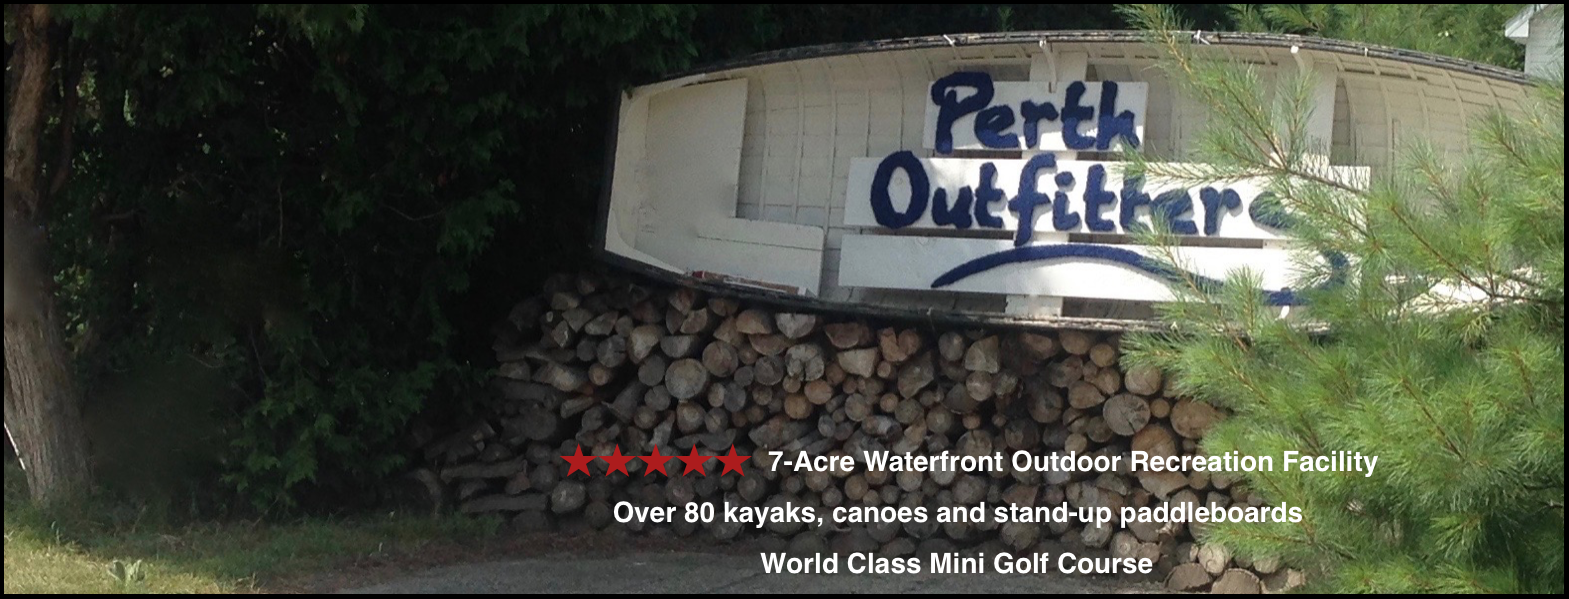 Perth Outfitters Mini Golf and Boat Rentals Featured Image